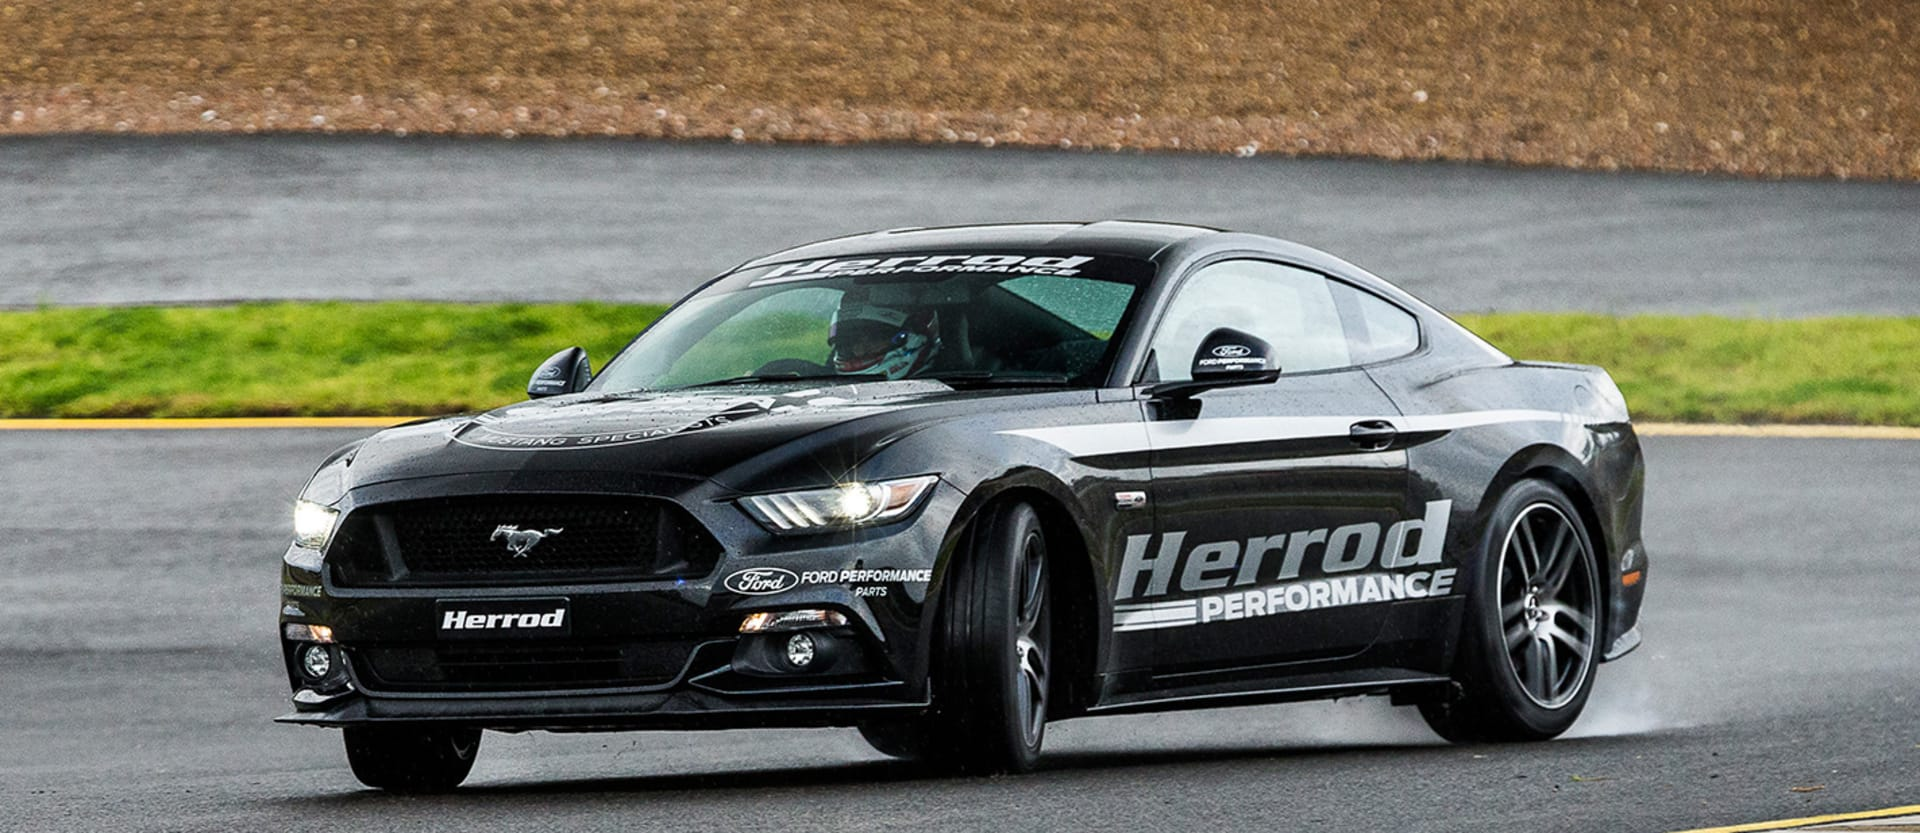 Herrod Performance Ford Mustang